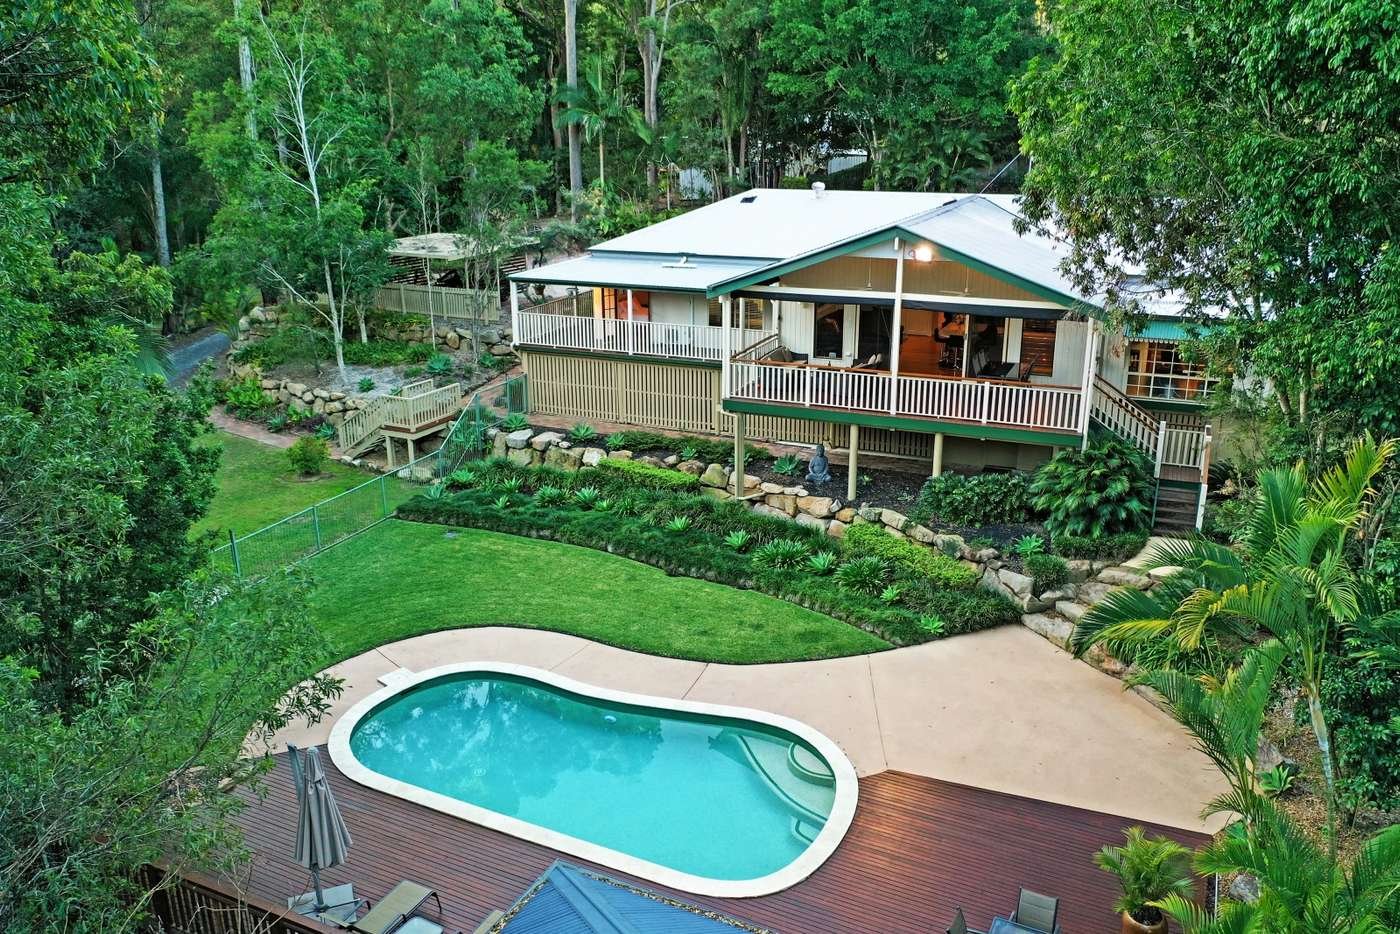 Main view of Homely house listing, 8 Hugh Guinea Court, Worongary QLD 4213